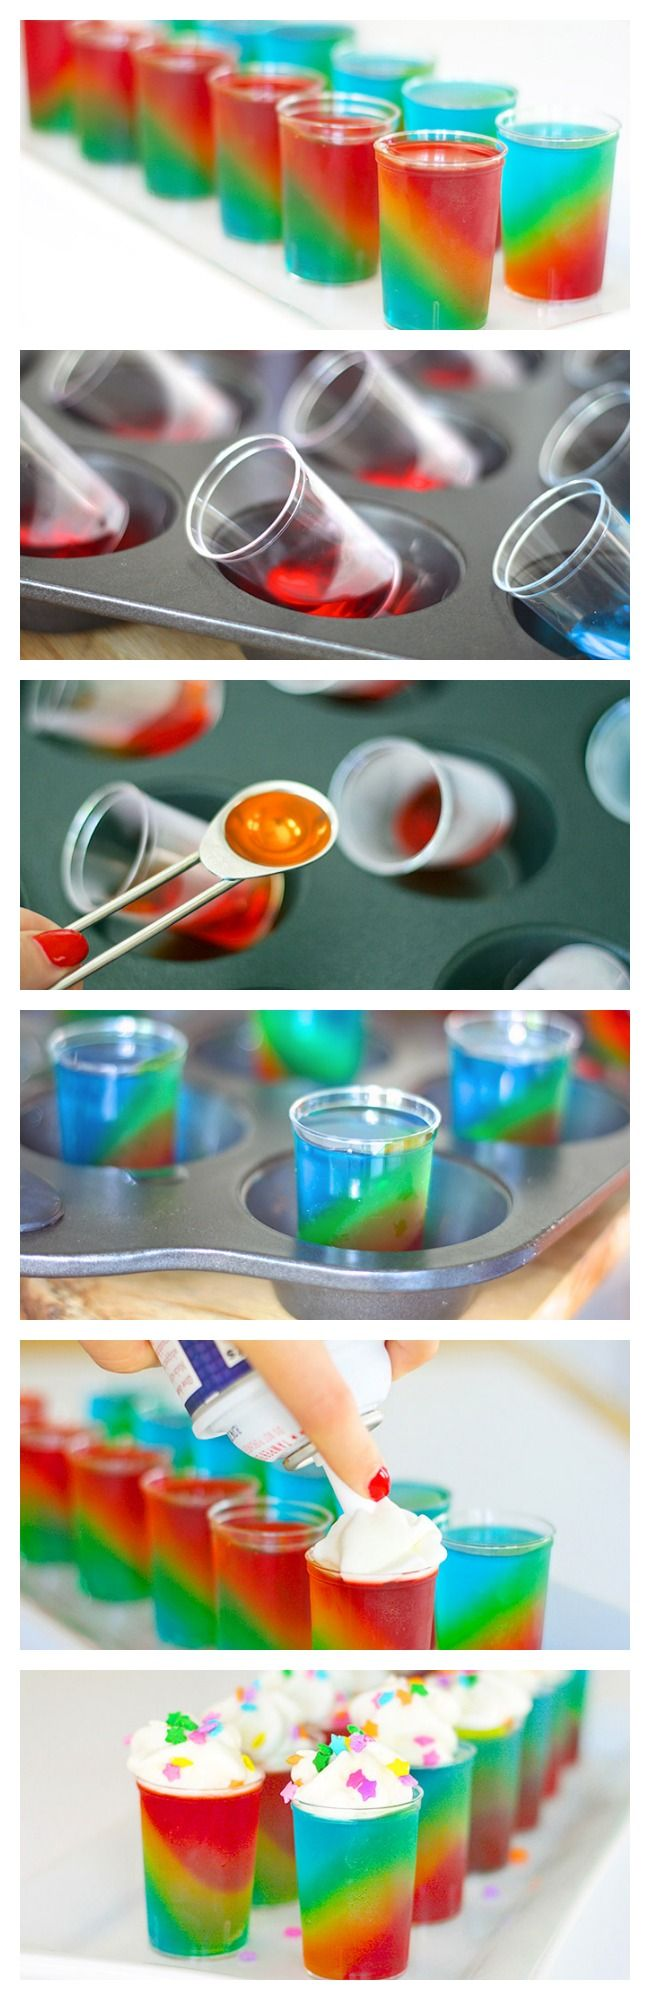 Slanted Rainbow Jello Shots